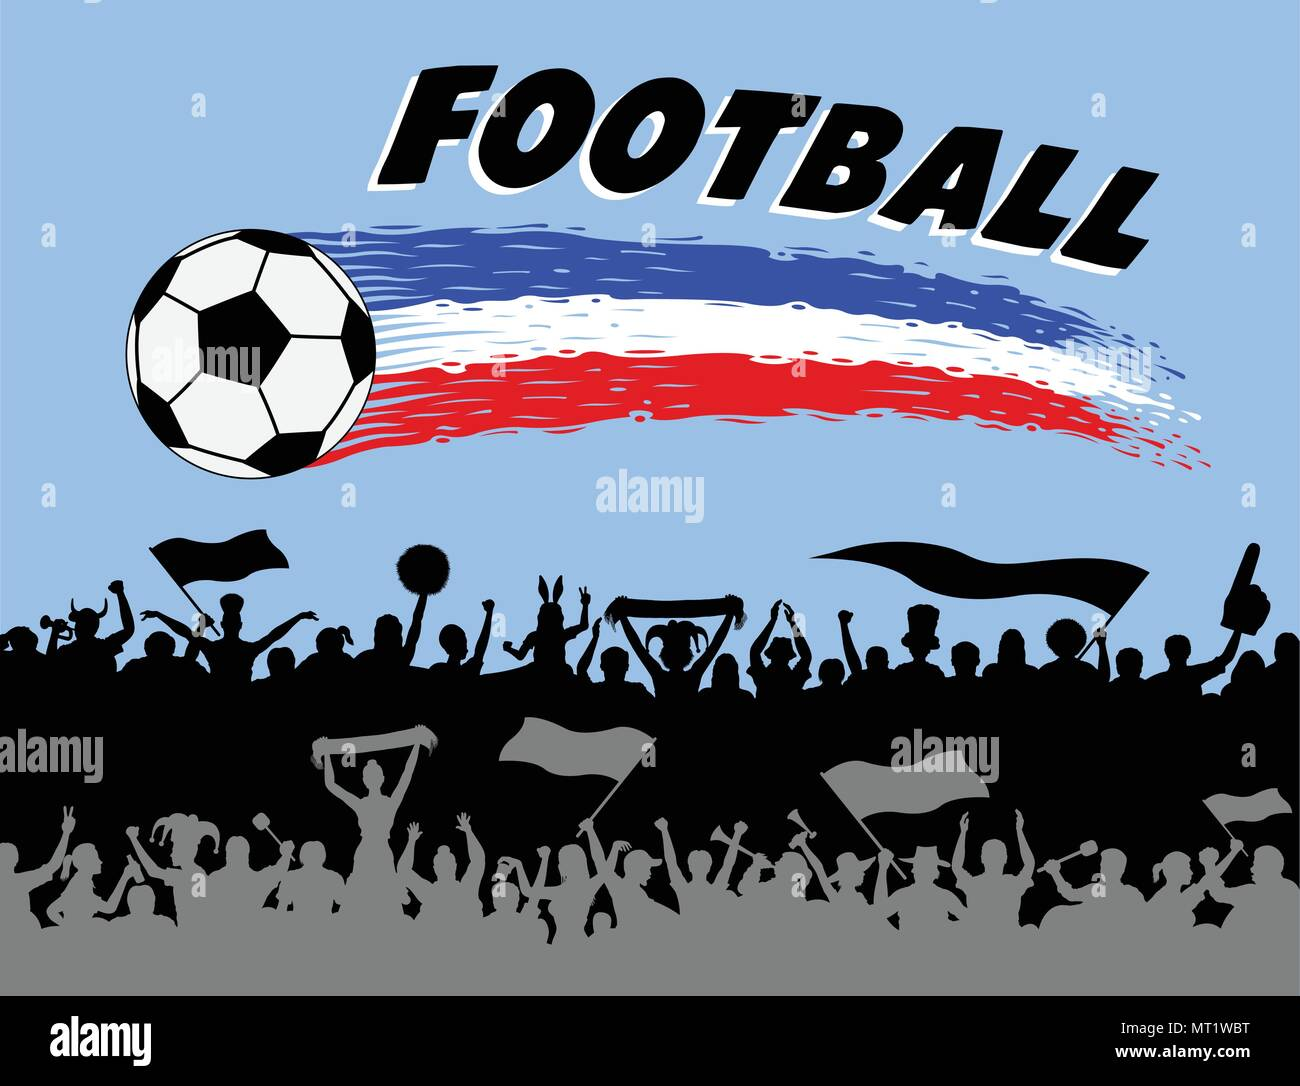 Football graph and brush strokes with soccer fans silhouettes. The silhouette and the background are in different layers and the text types do not nee - Stock Vector